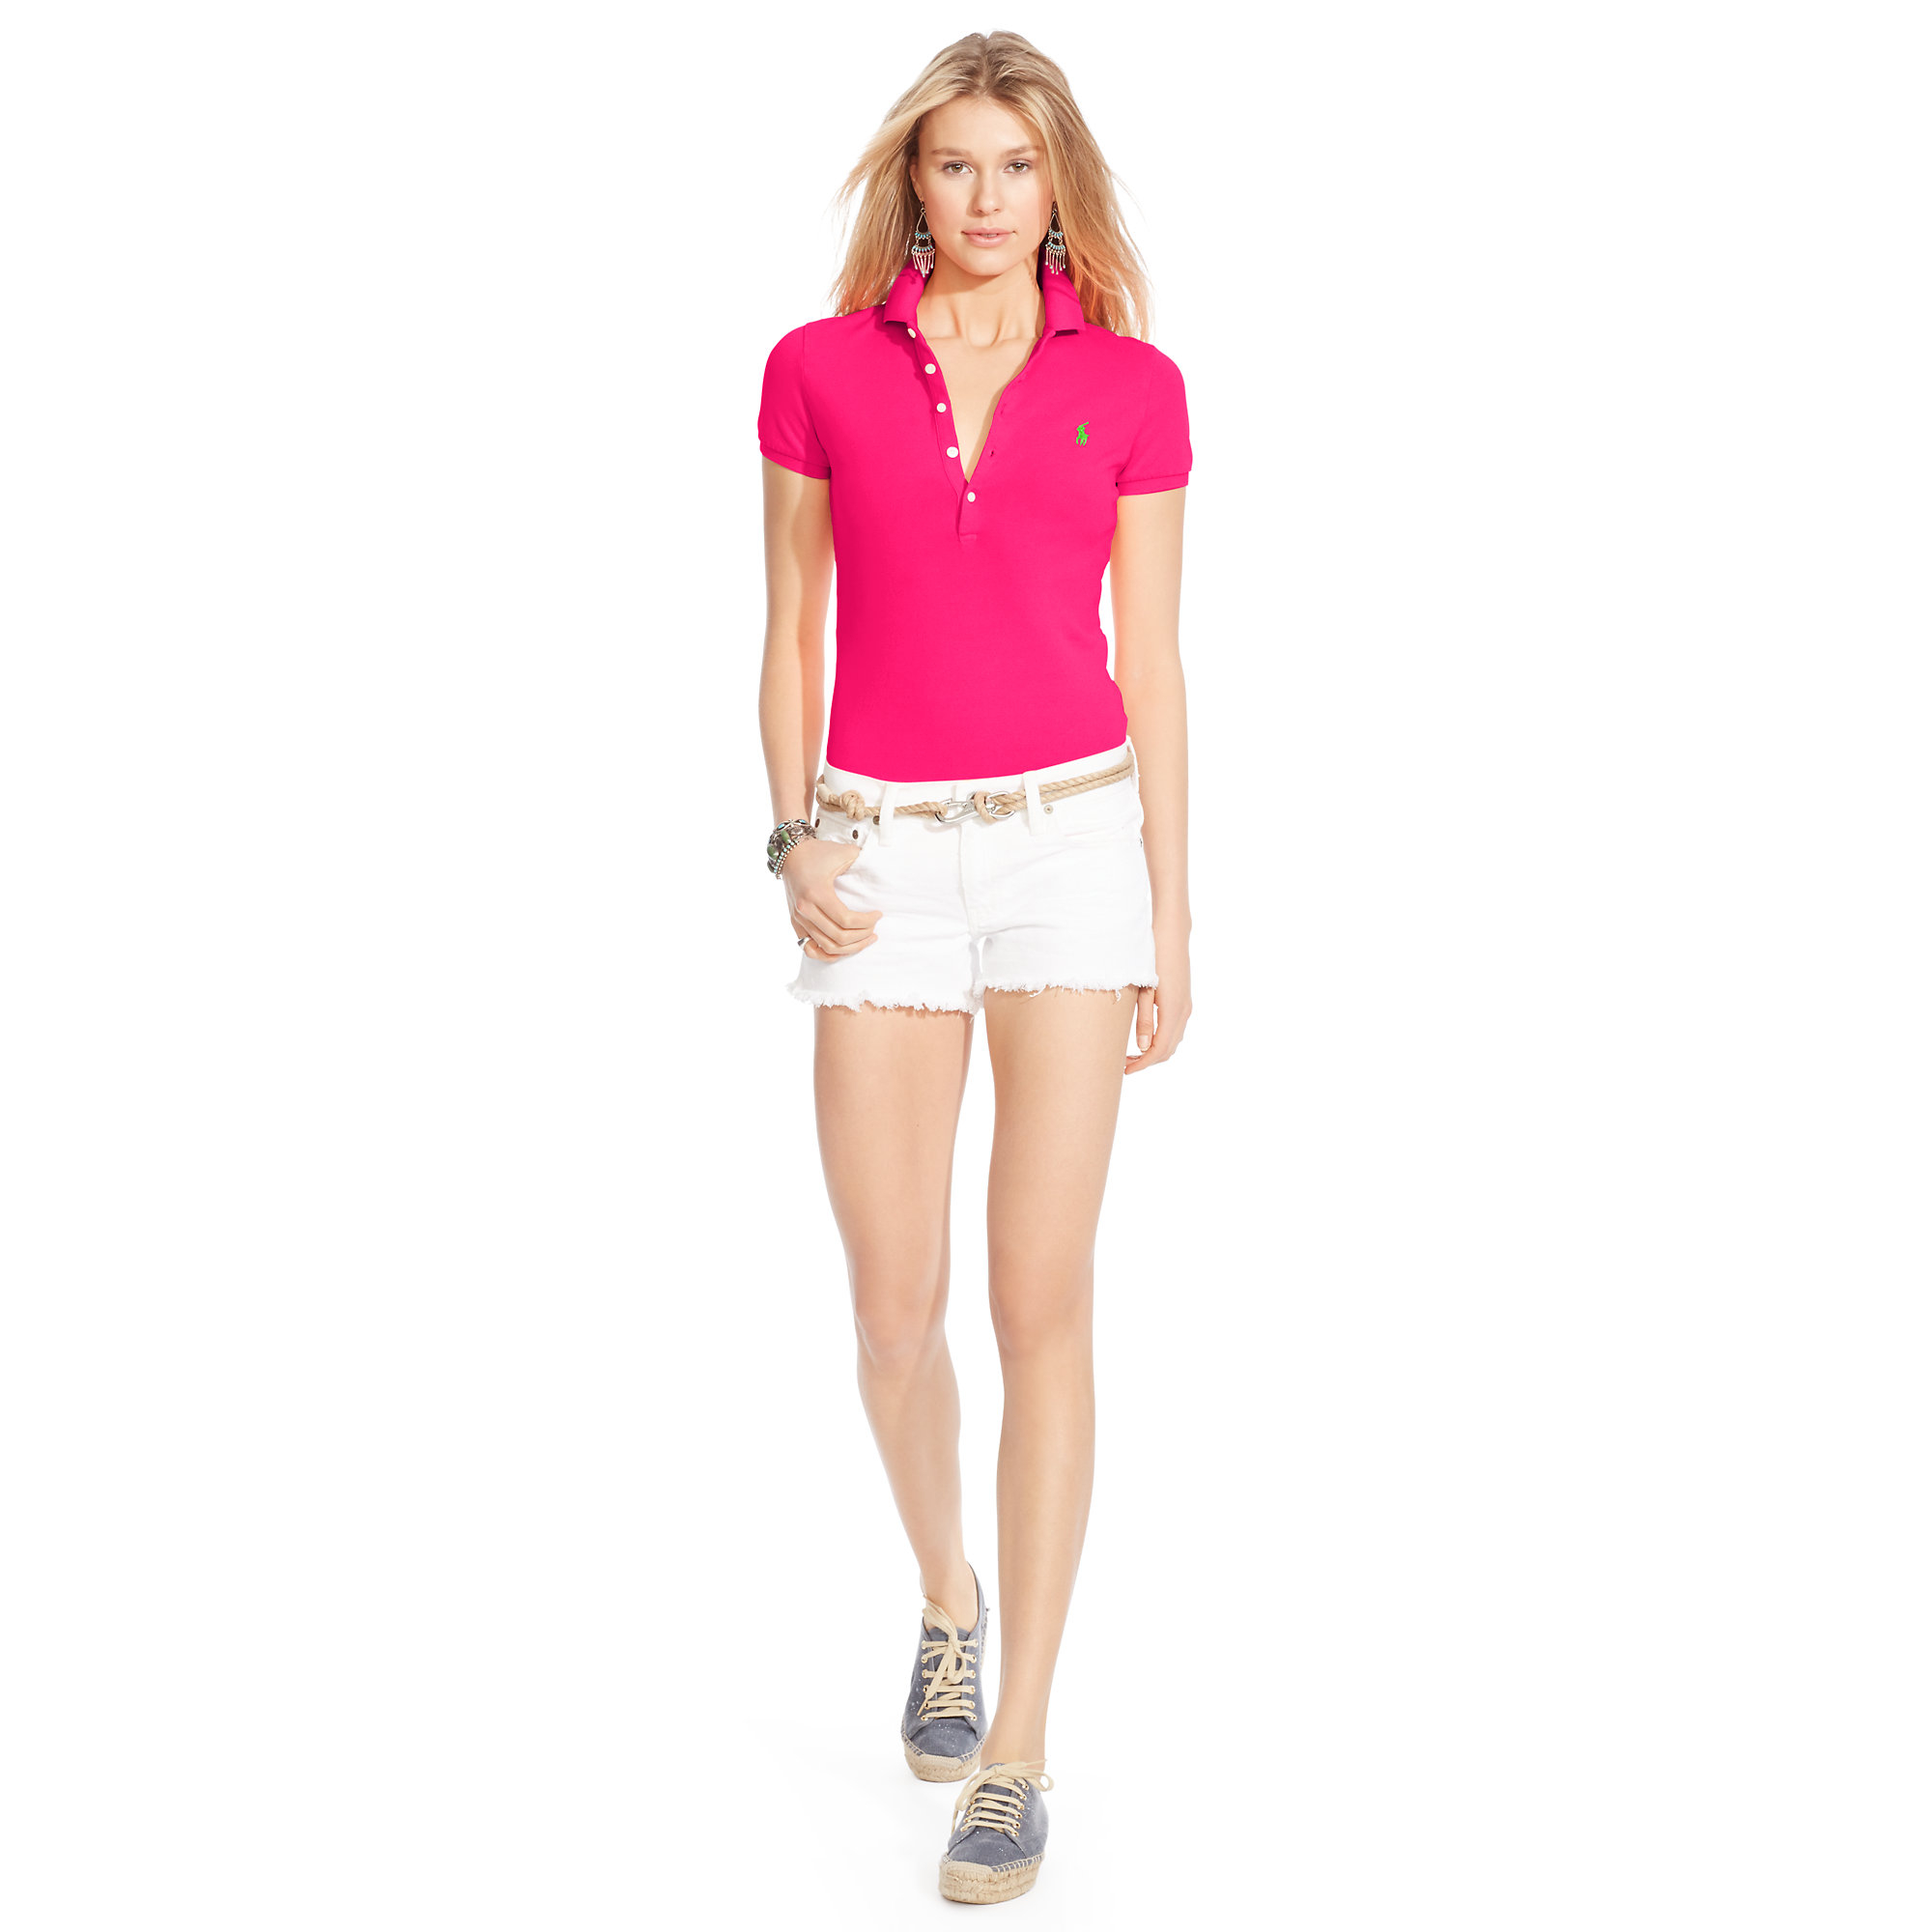 04ea6367d179 Lyst - Polo Ralph Lauren Skinny Stretch Polo Shirt in Pink